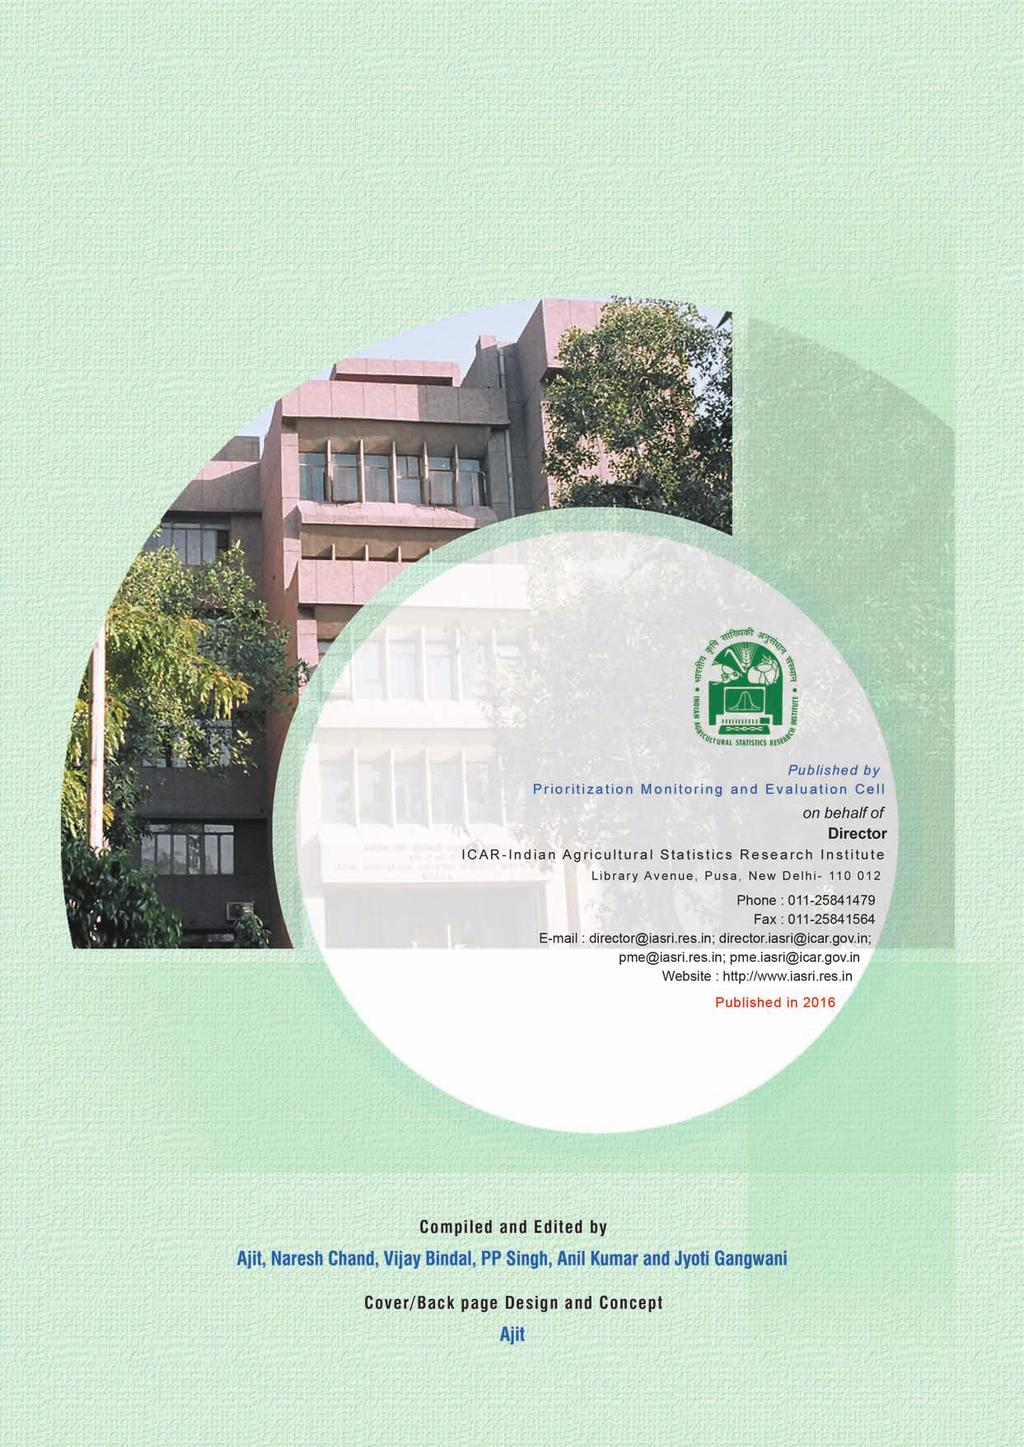 Annual report pdf 2 annual report icar indian agricultural statistics research institute library avenue pusa new delhi iso 90012008 certified institute isoiec isoiec fandeluxe Gallery